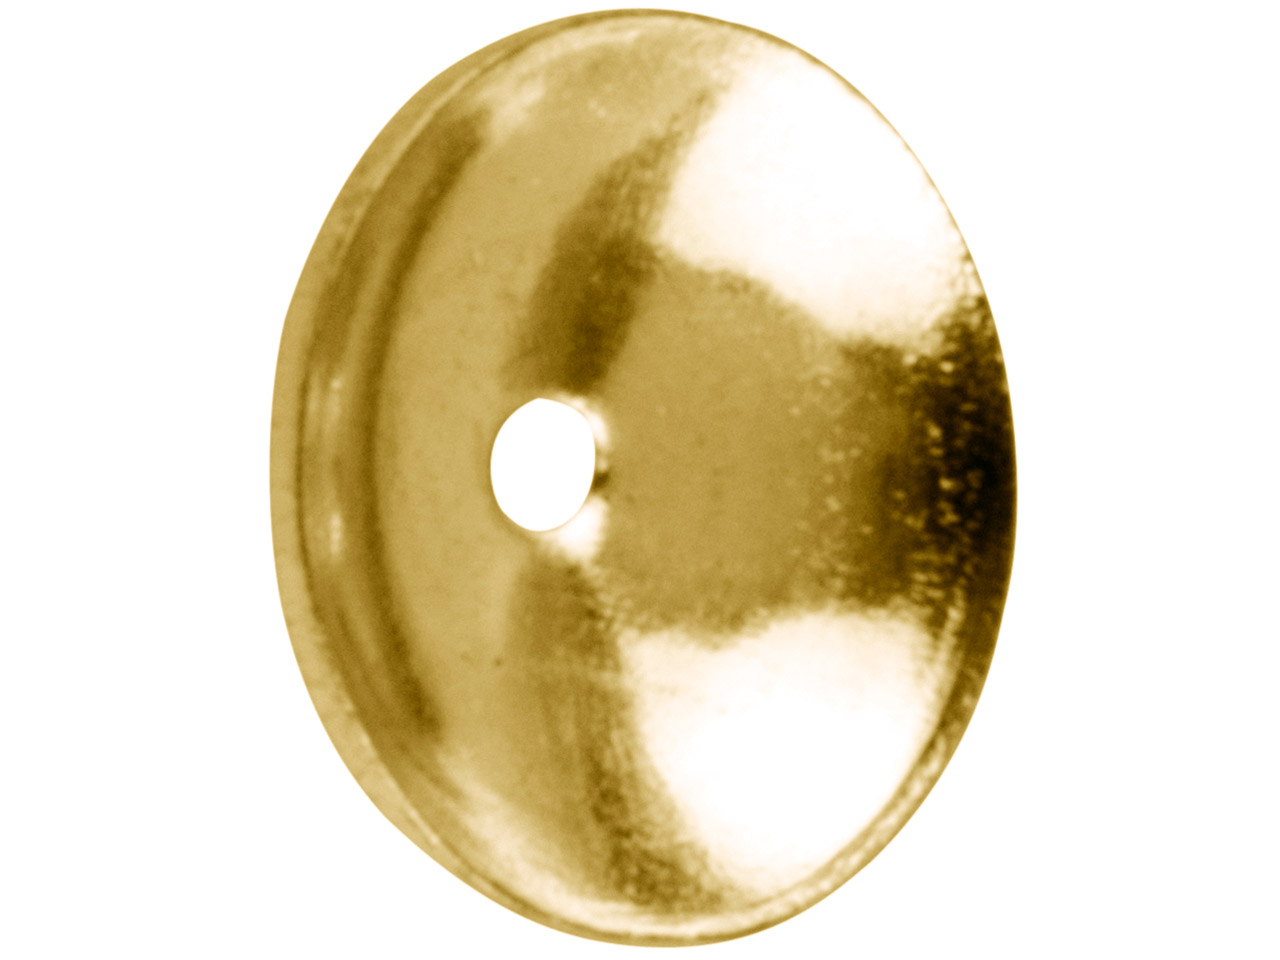 Gold Plated Plain Bead Cap 5mm     Pack of 25